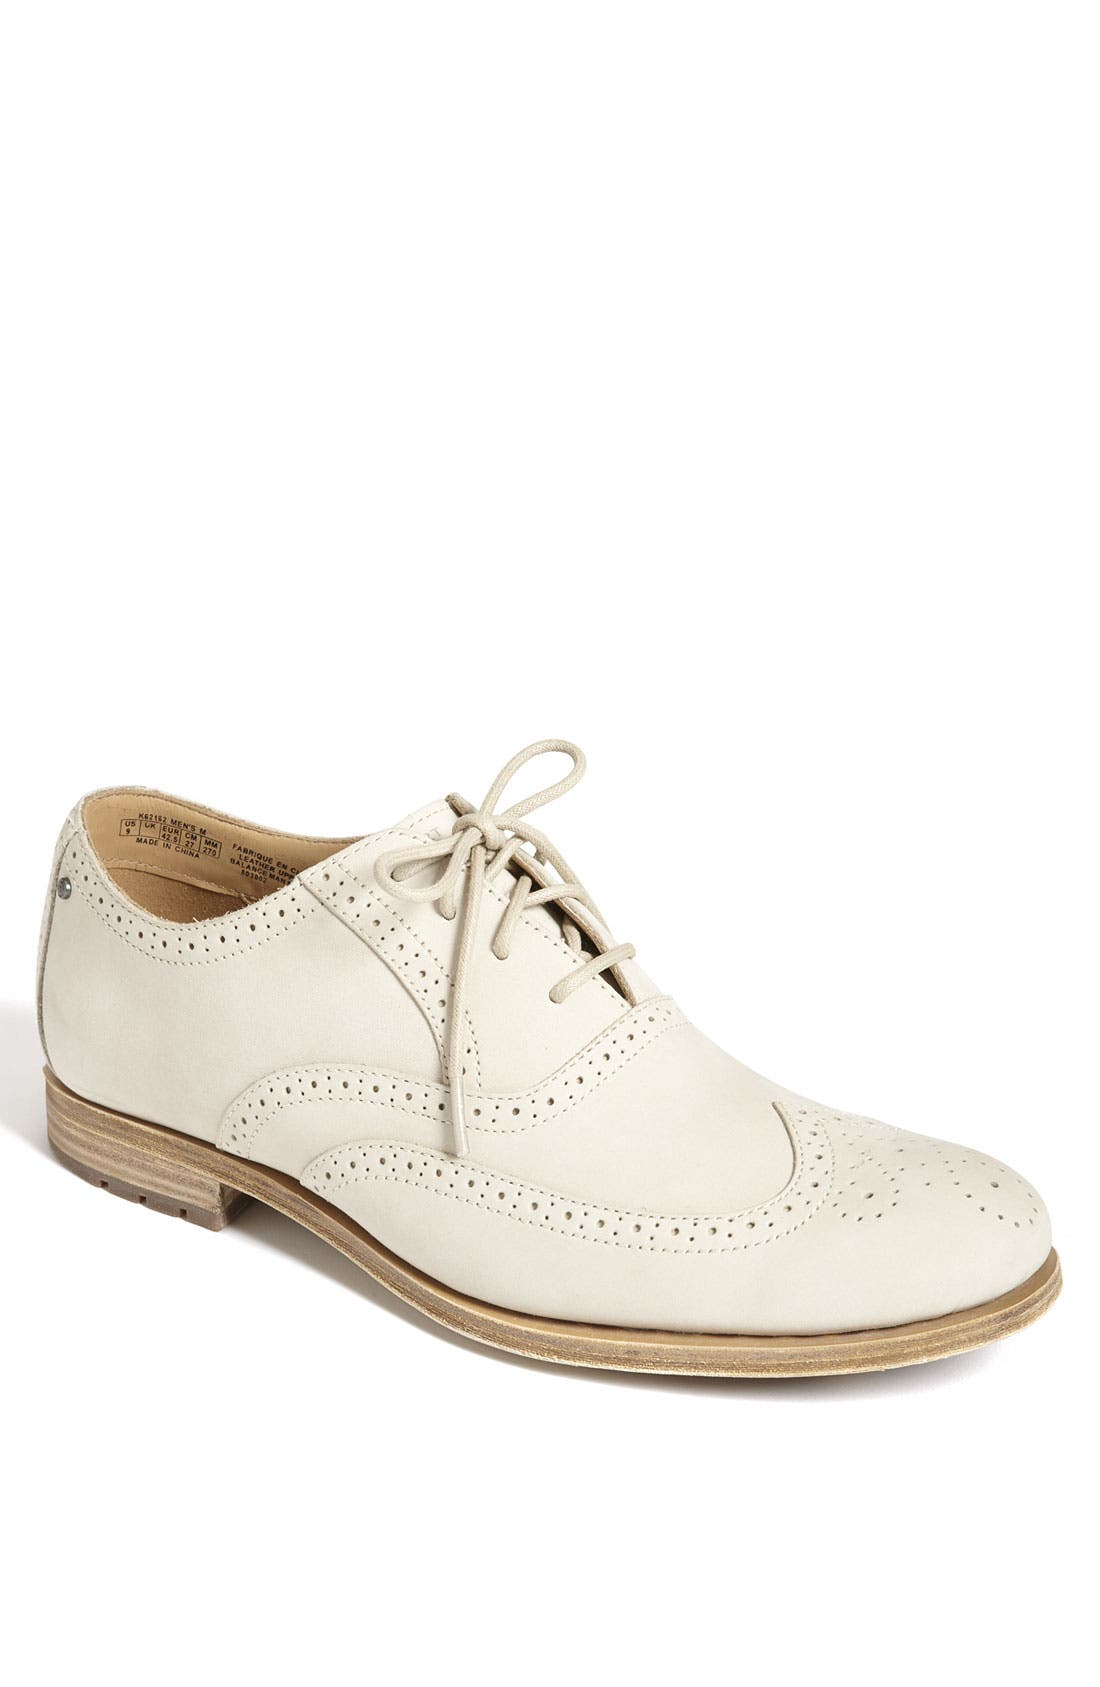 Alternate Image 1 Selected - Rockport® 'Day to Night' Wingtip Oxford